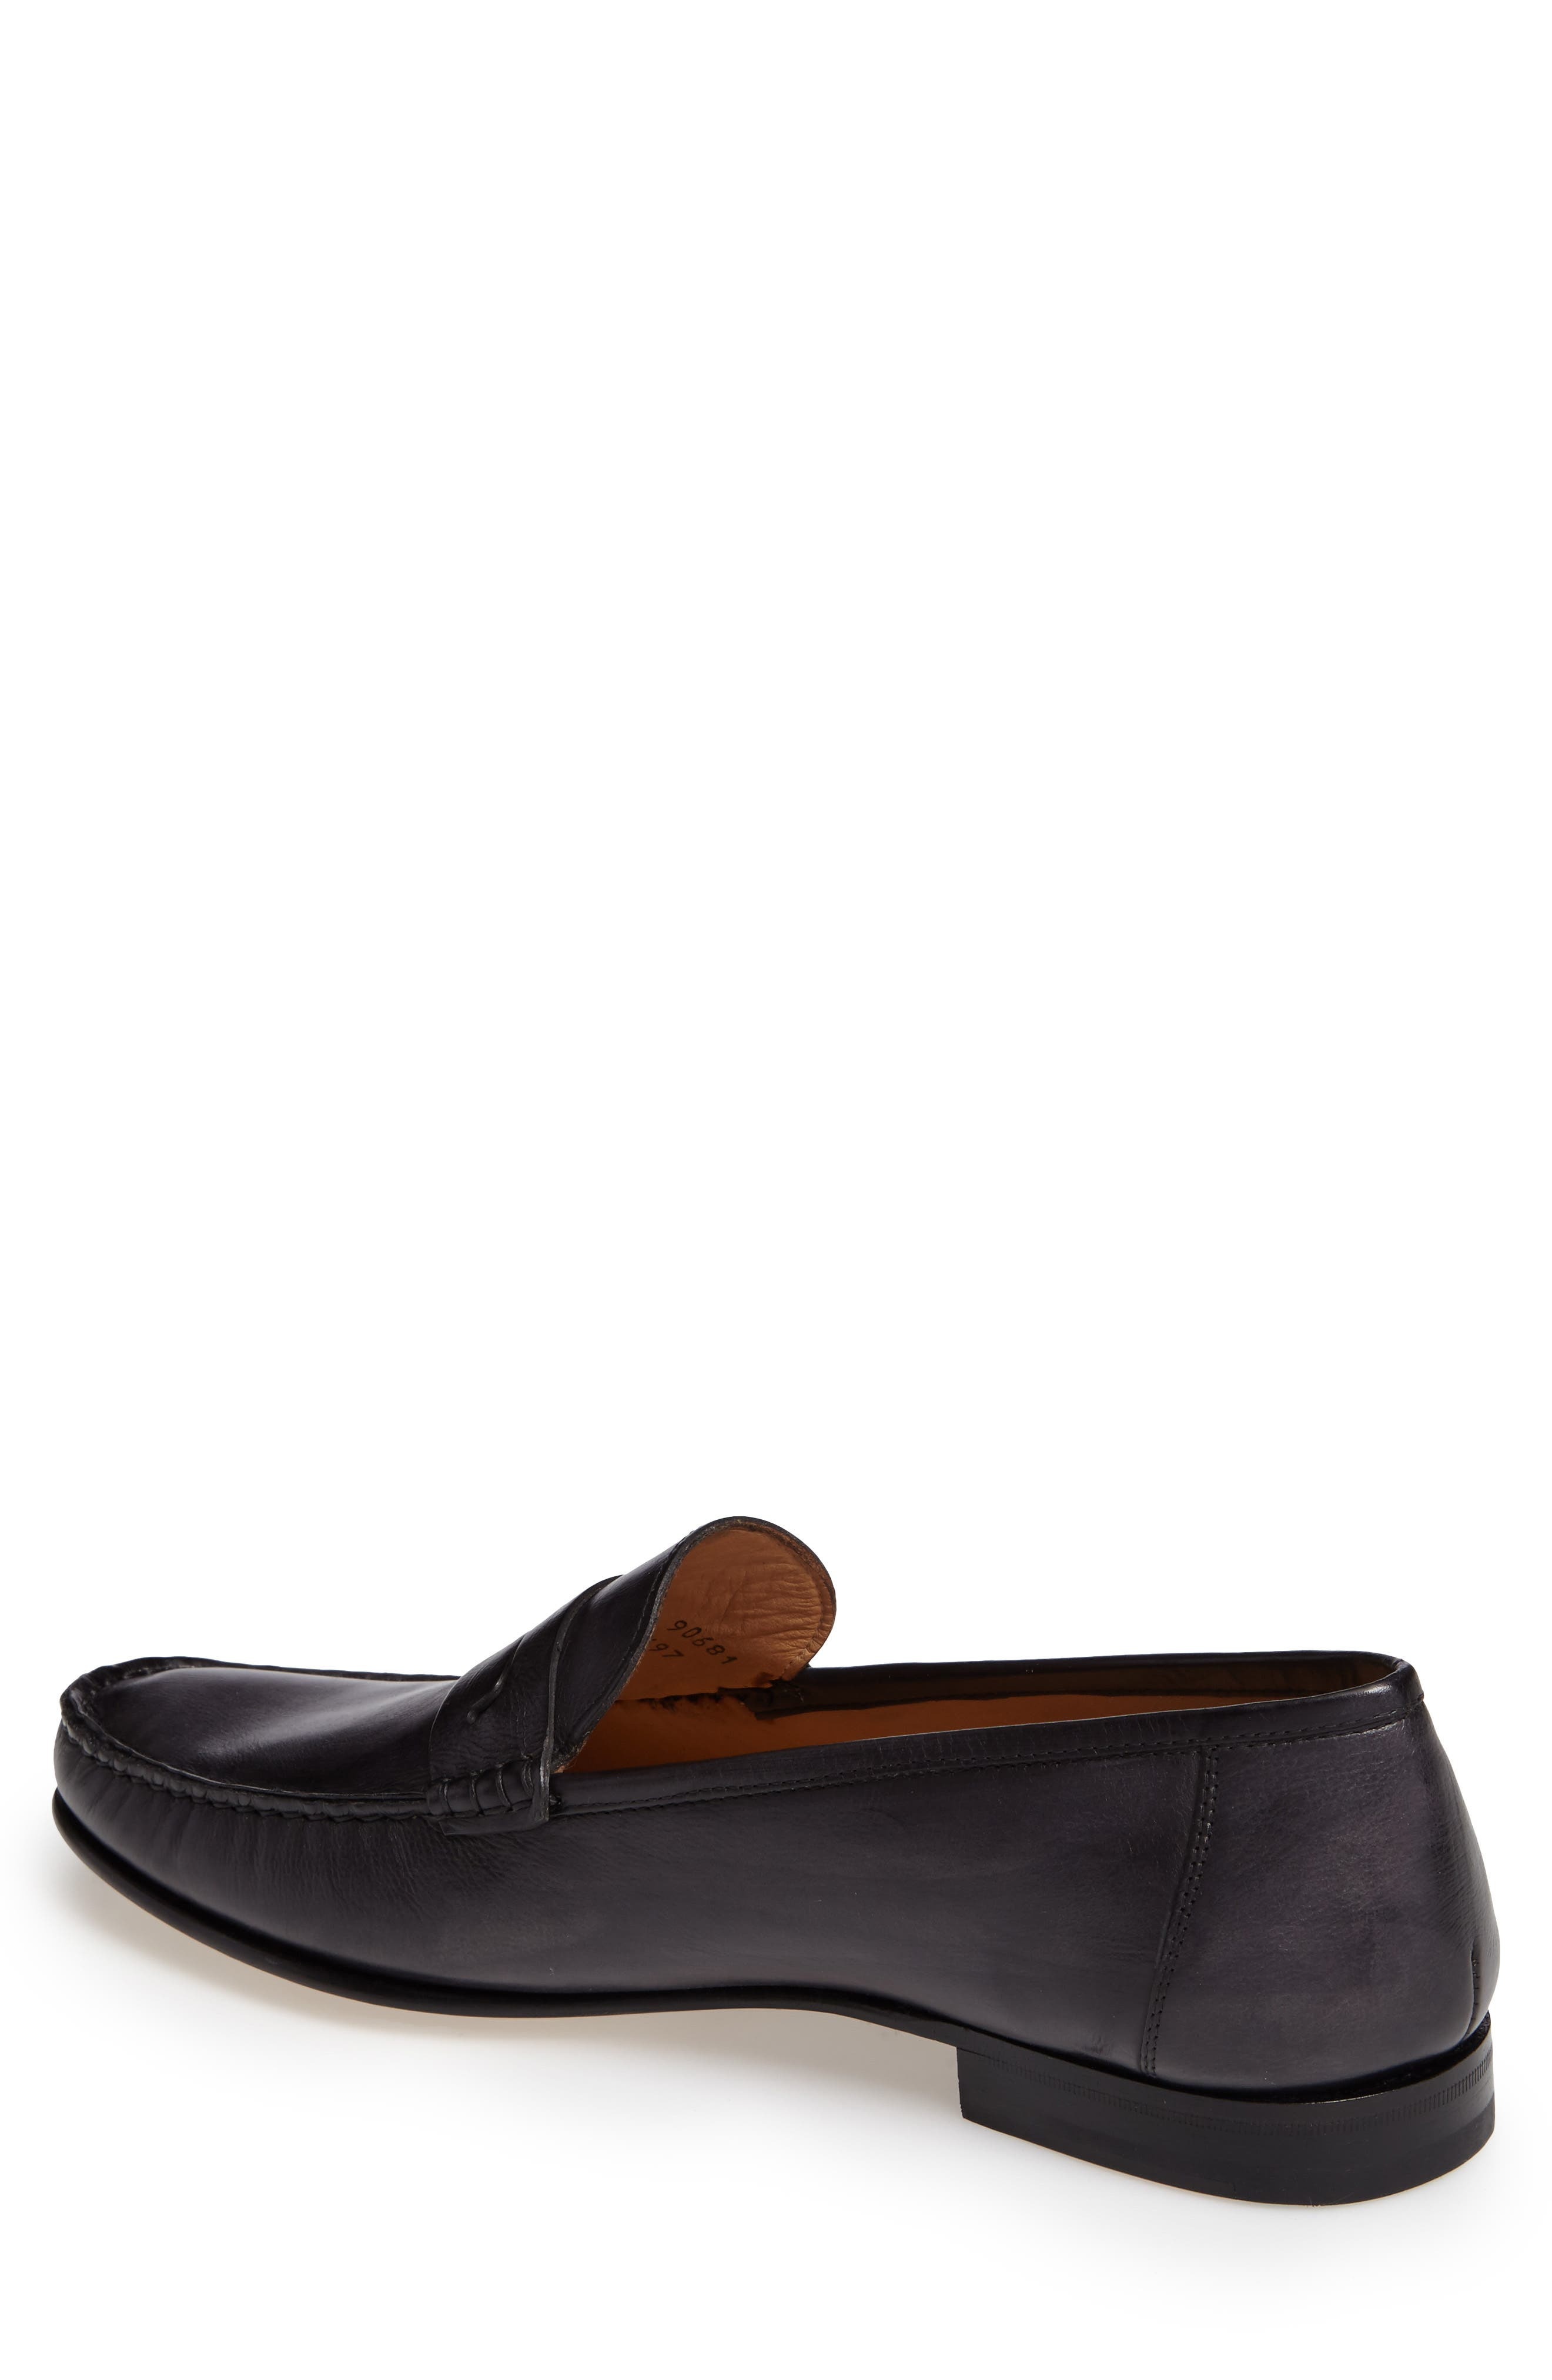 Pauli Classic Penny Loafer,                             Alternate thumbnail 2, color,                             BLACK LEATHER